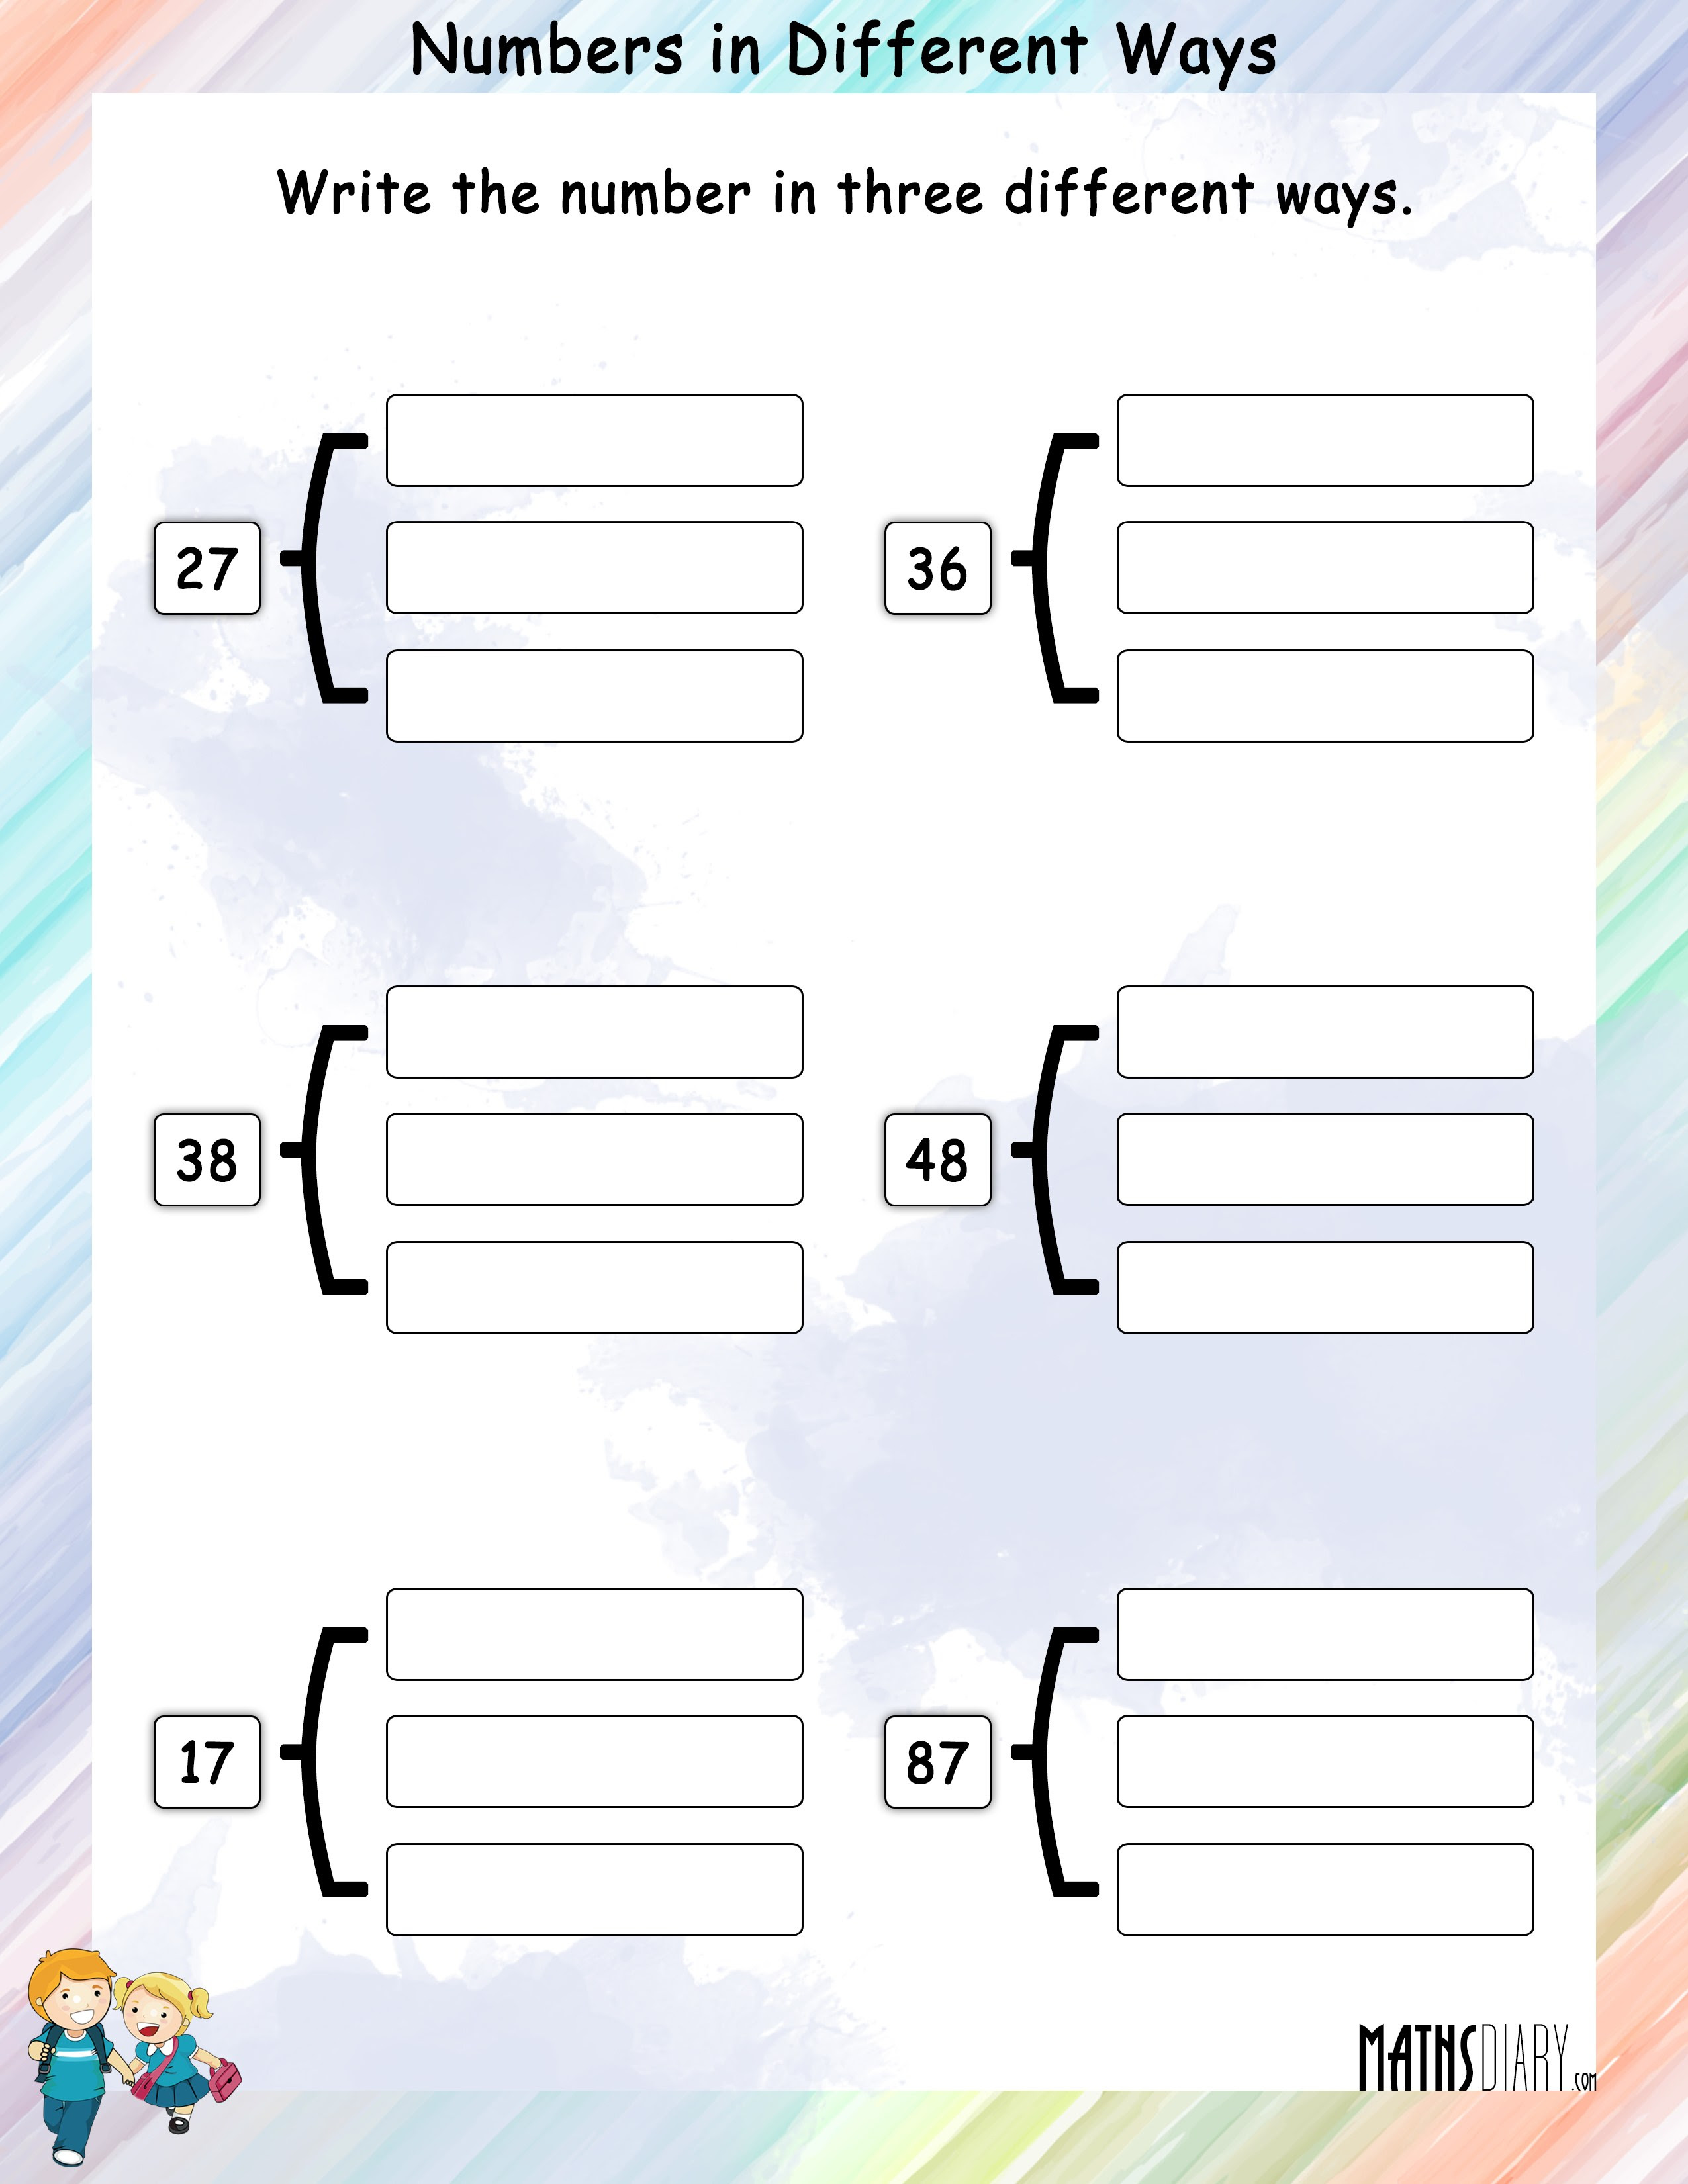 Write Numbers In Different Ways Mathsdiarycom